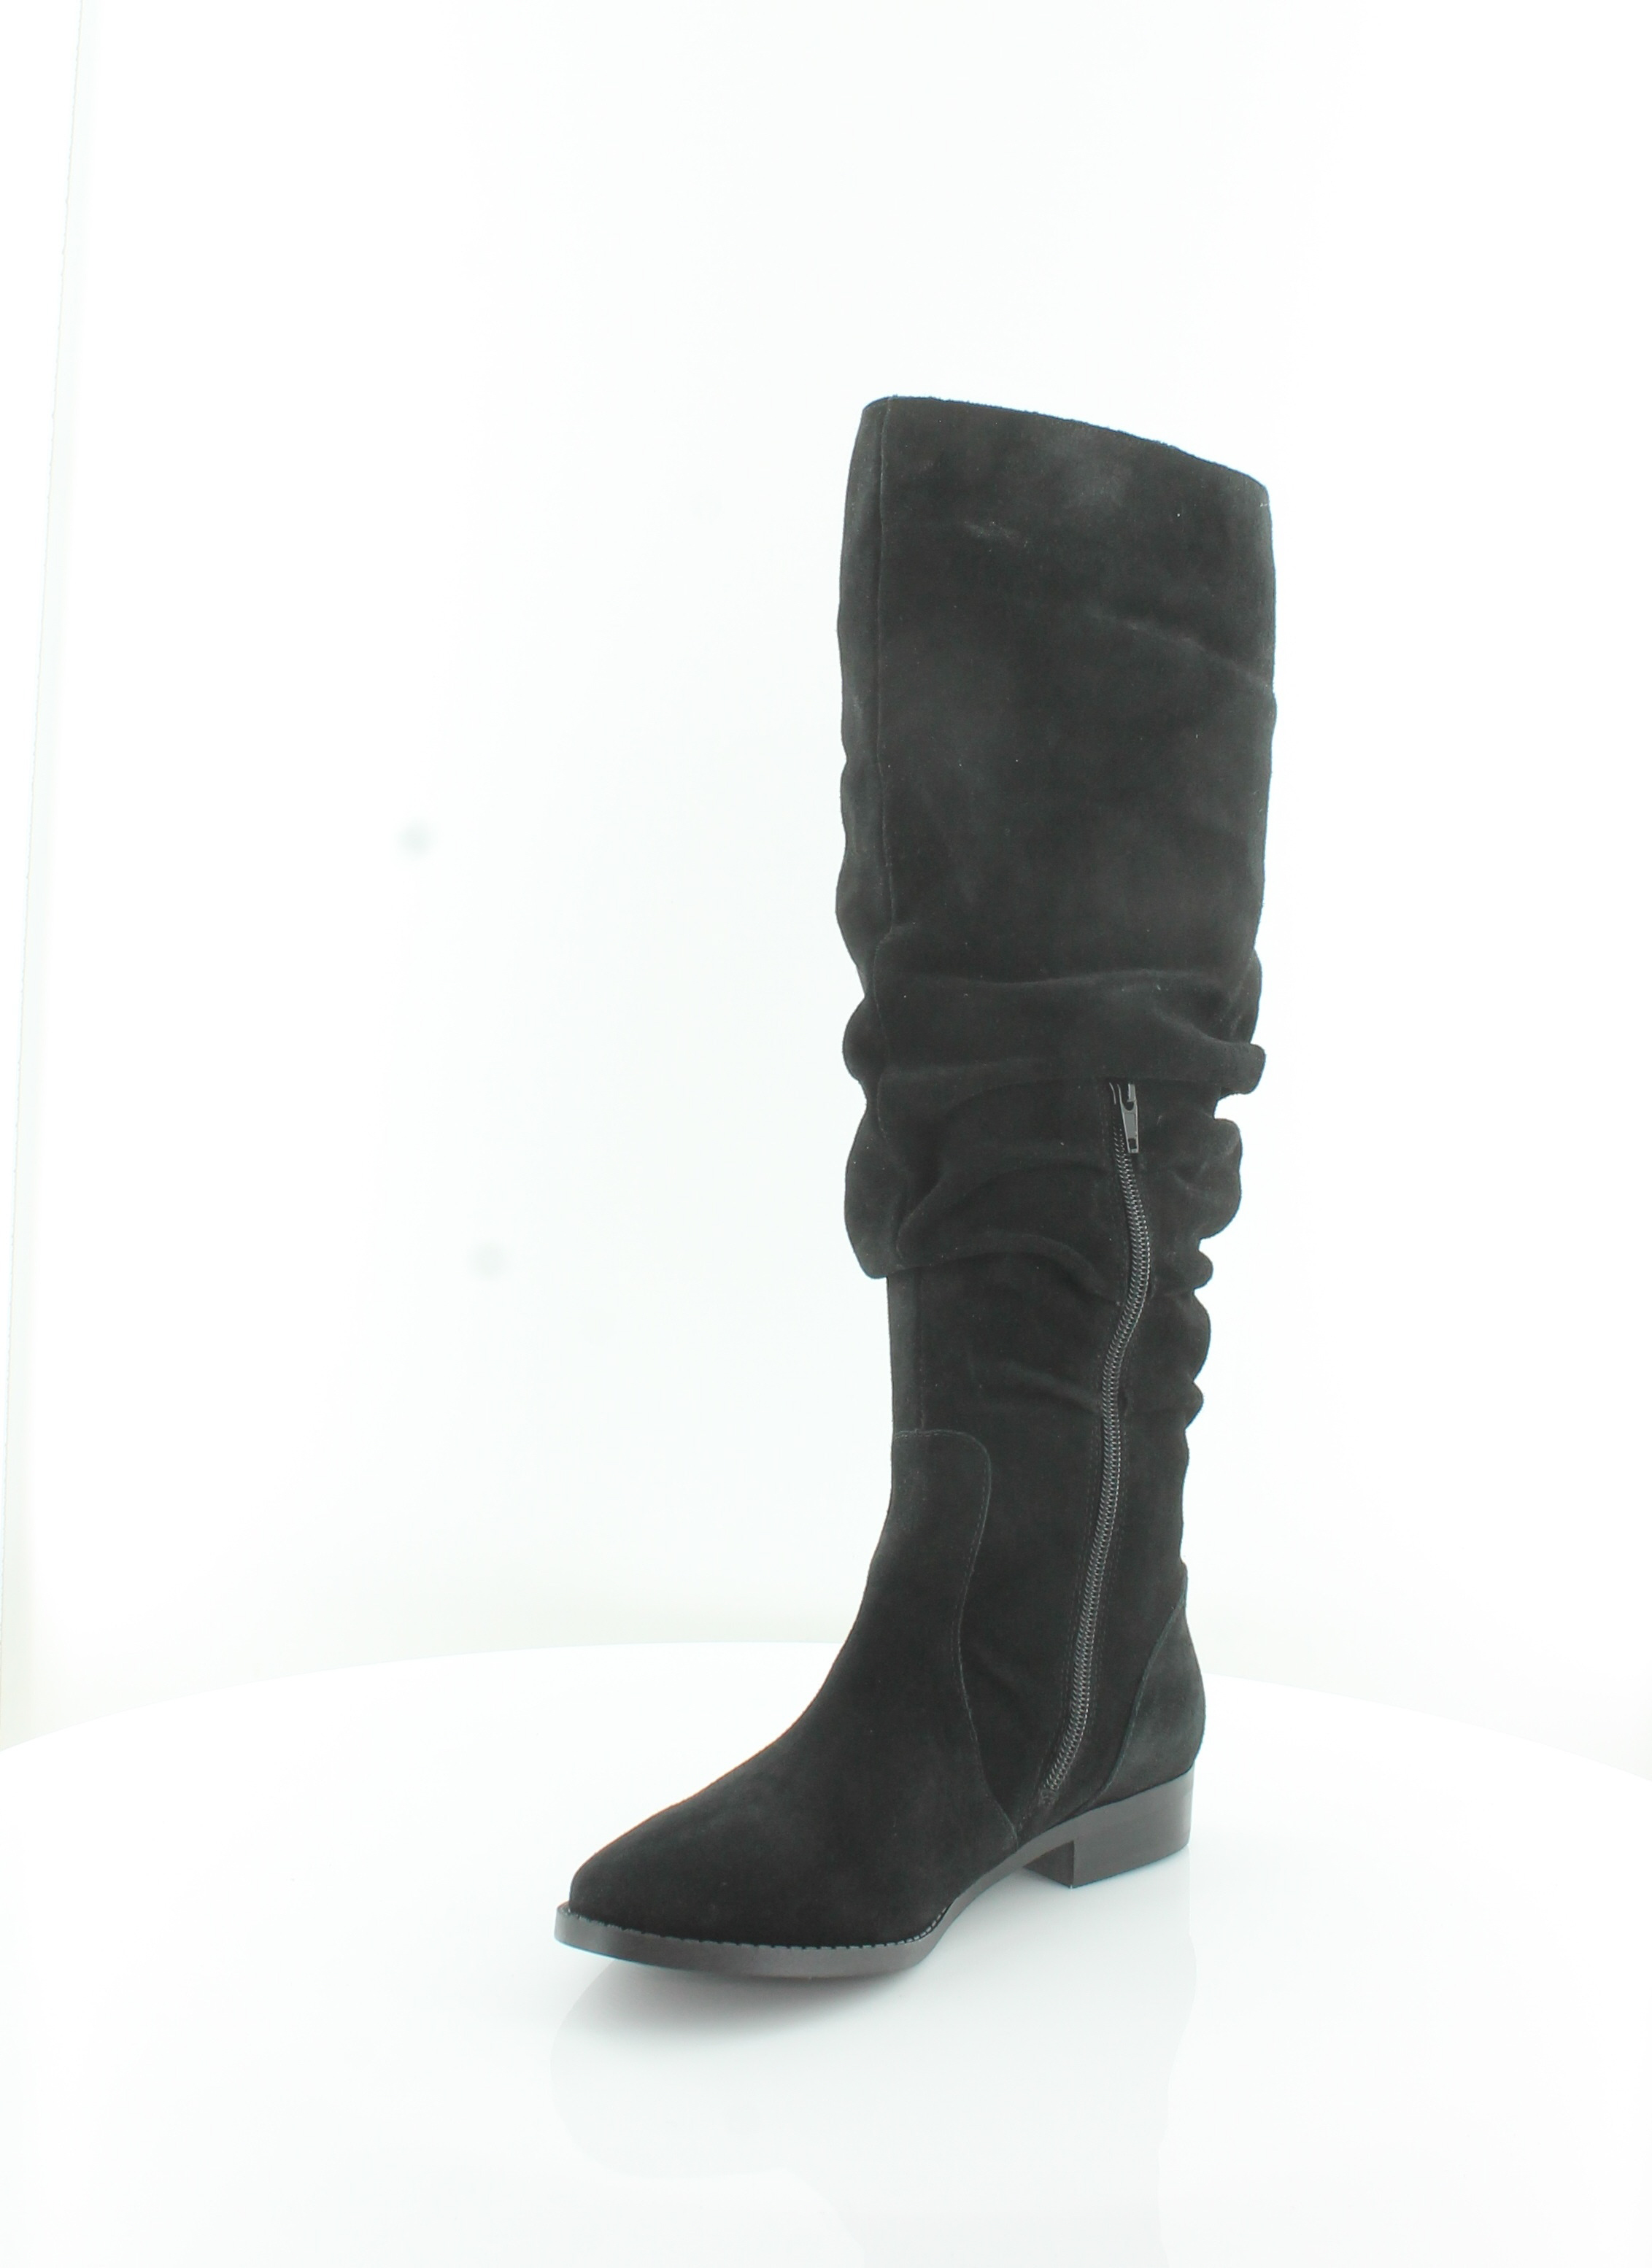 98756e181f1 ... Picture 2 of 5  Picture 3 of 5  Picture 4 of 5. 2. Steve Madden New  Beacon Black Womens ...